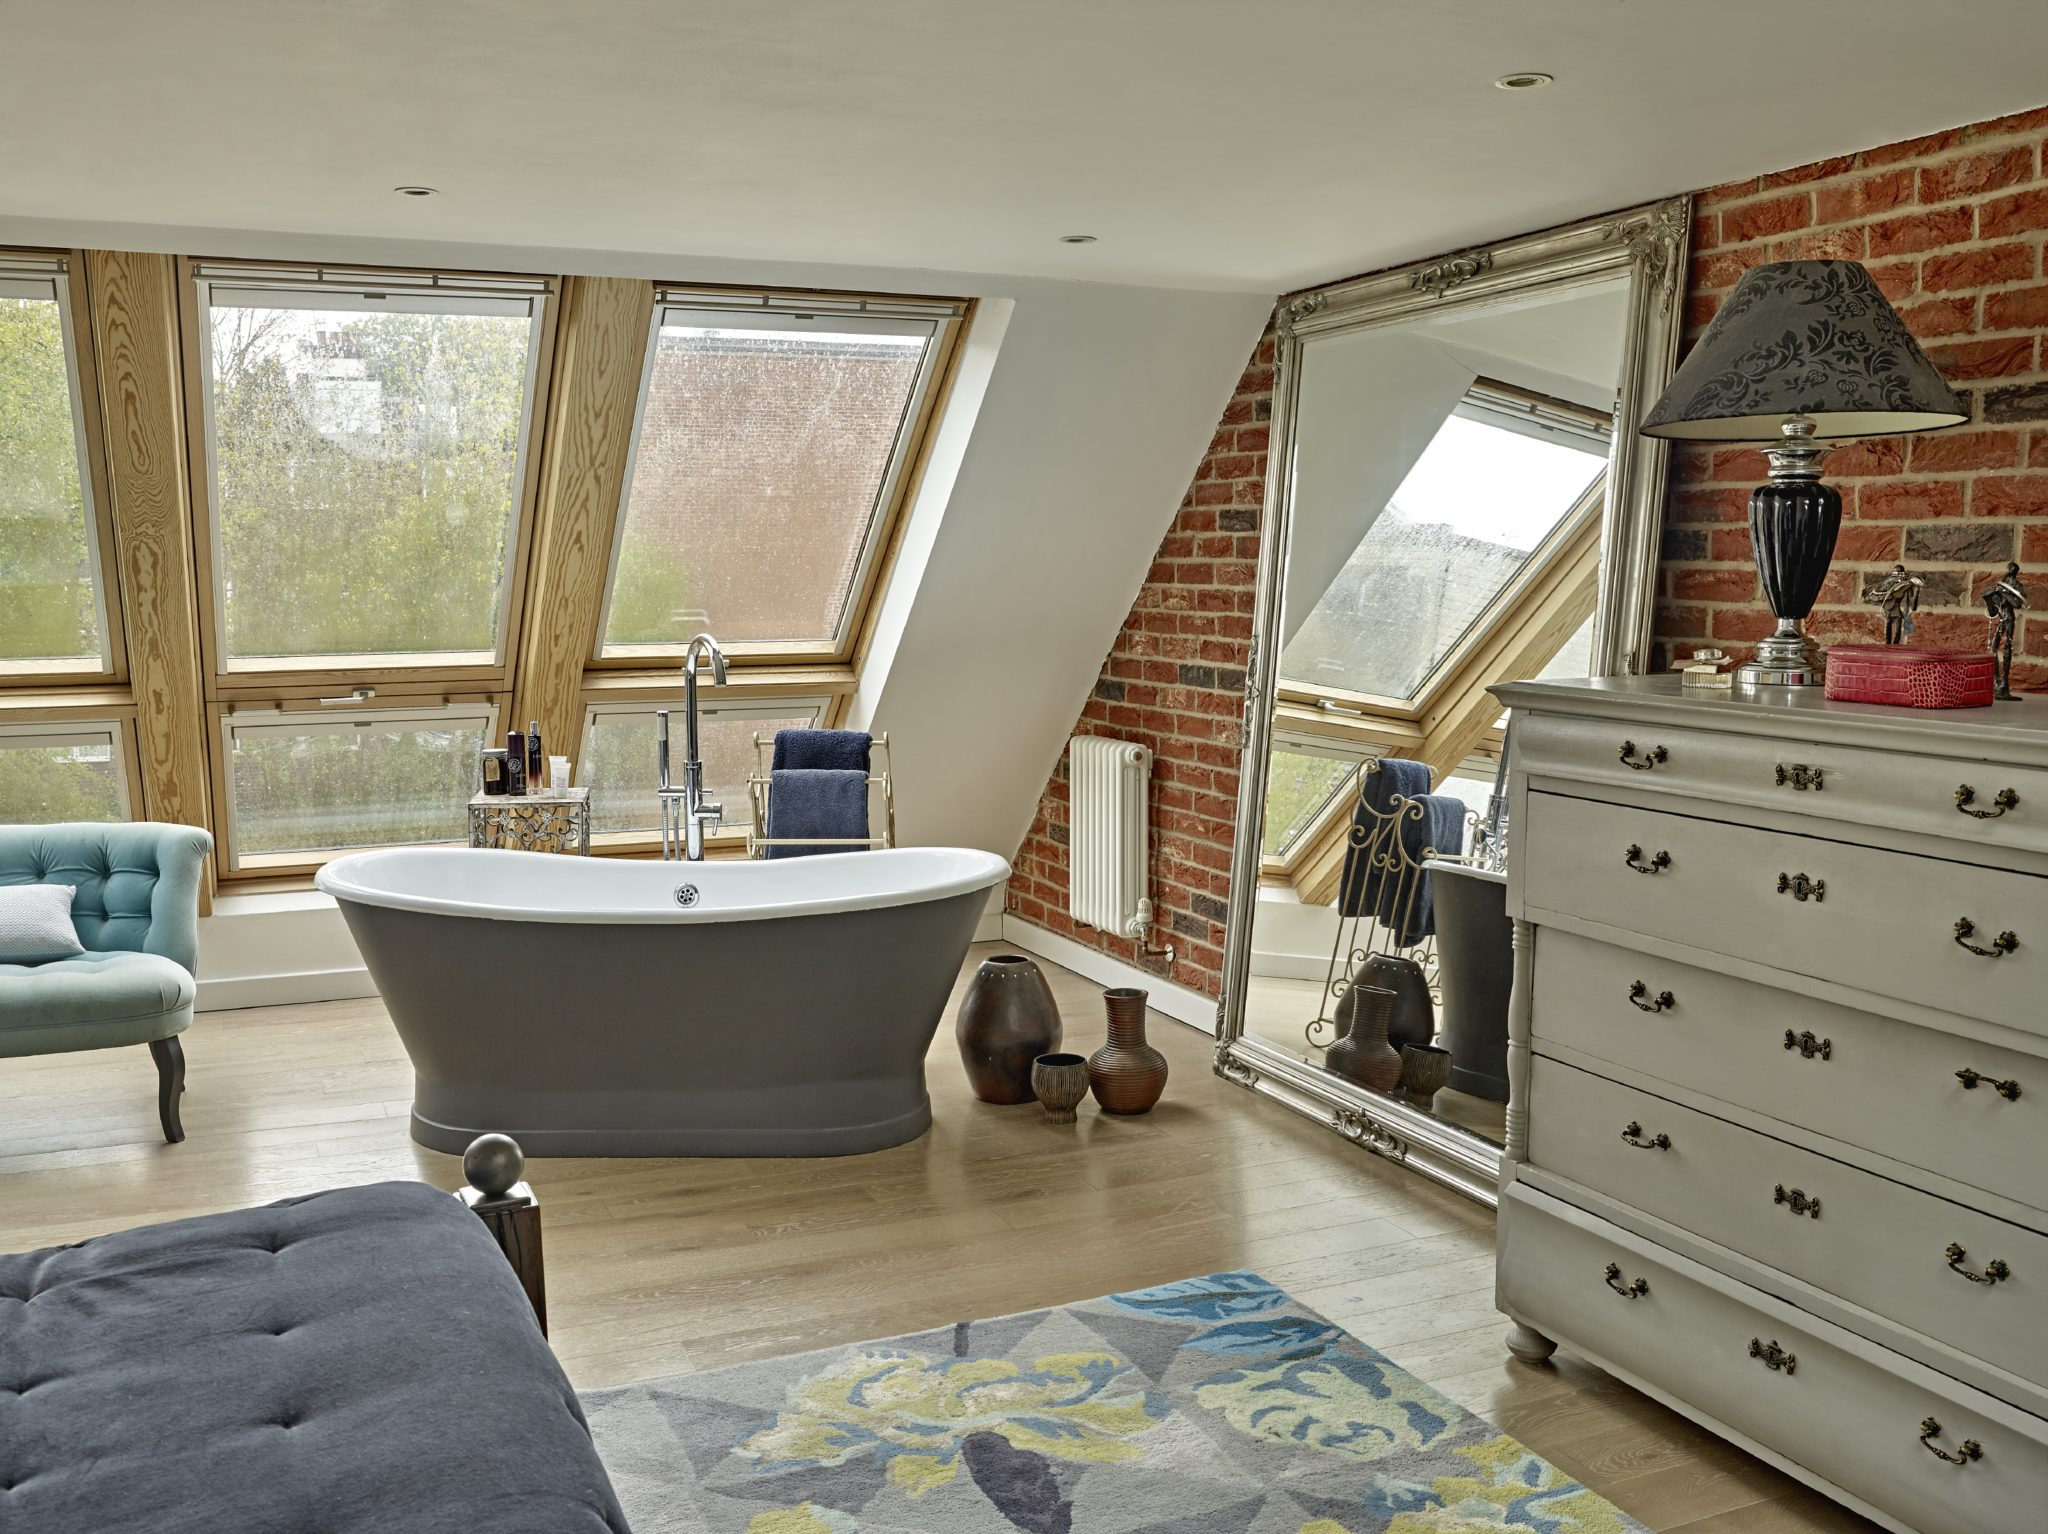 Bedroom with freestanding bath - Muswell Hill, London, by Caz Myers